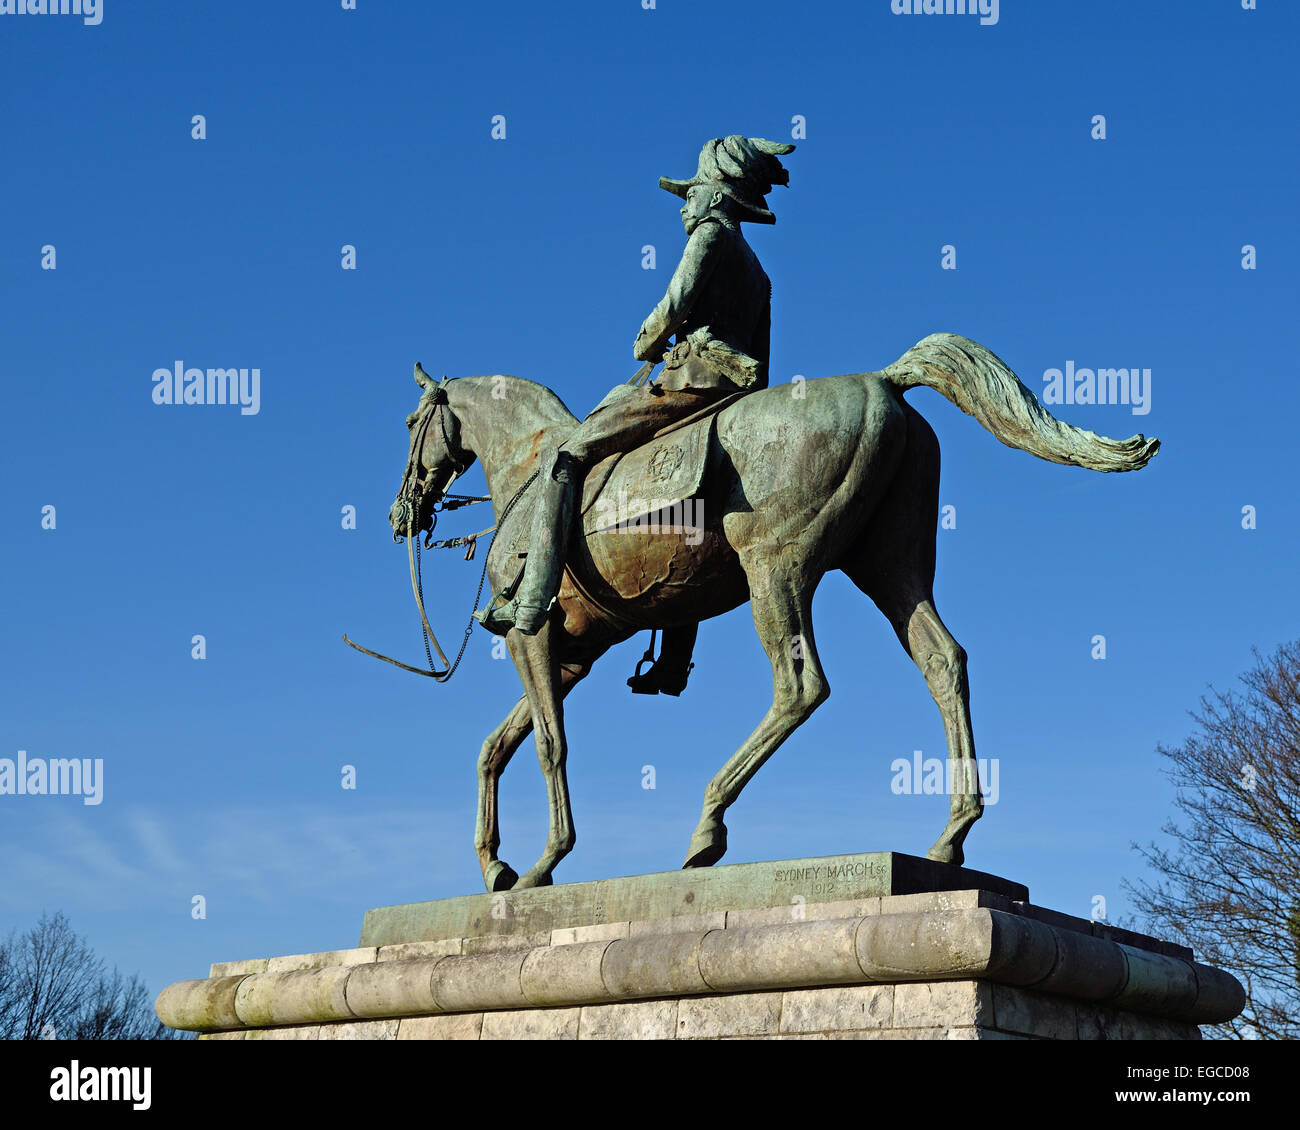 Lord Kitchener Stock Photos & Lord Kitchener Stock Images - Alamy